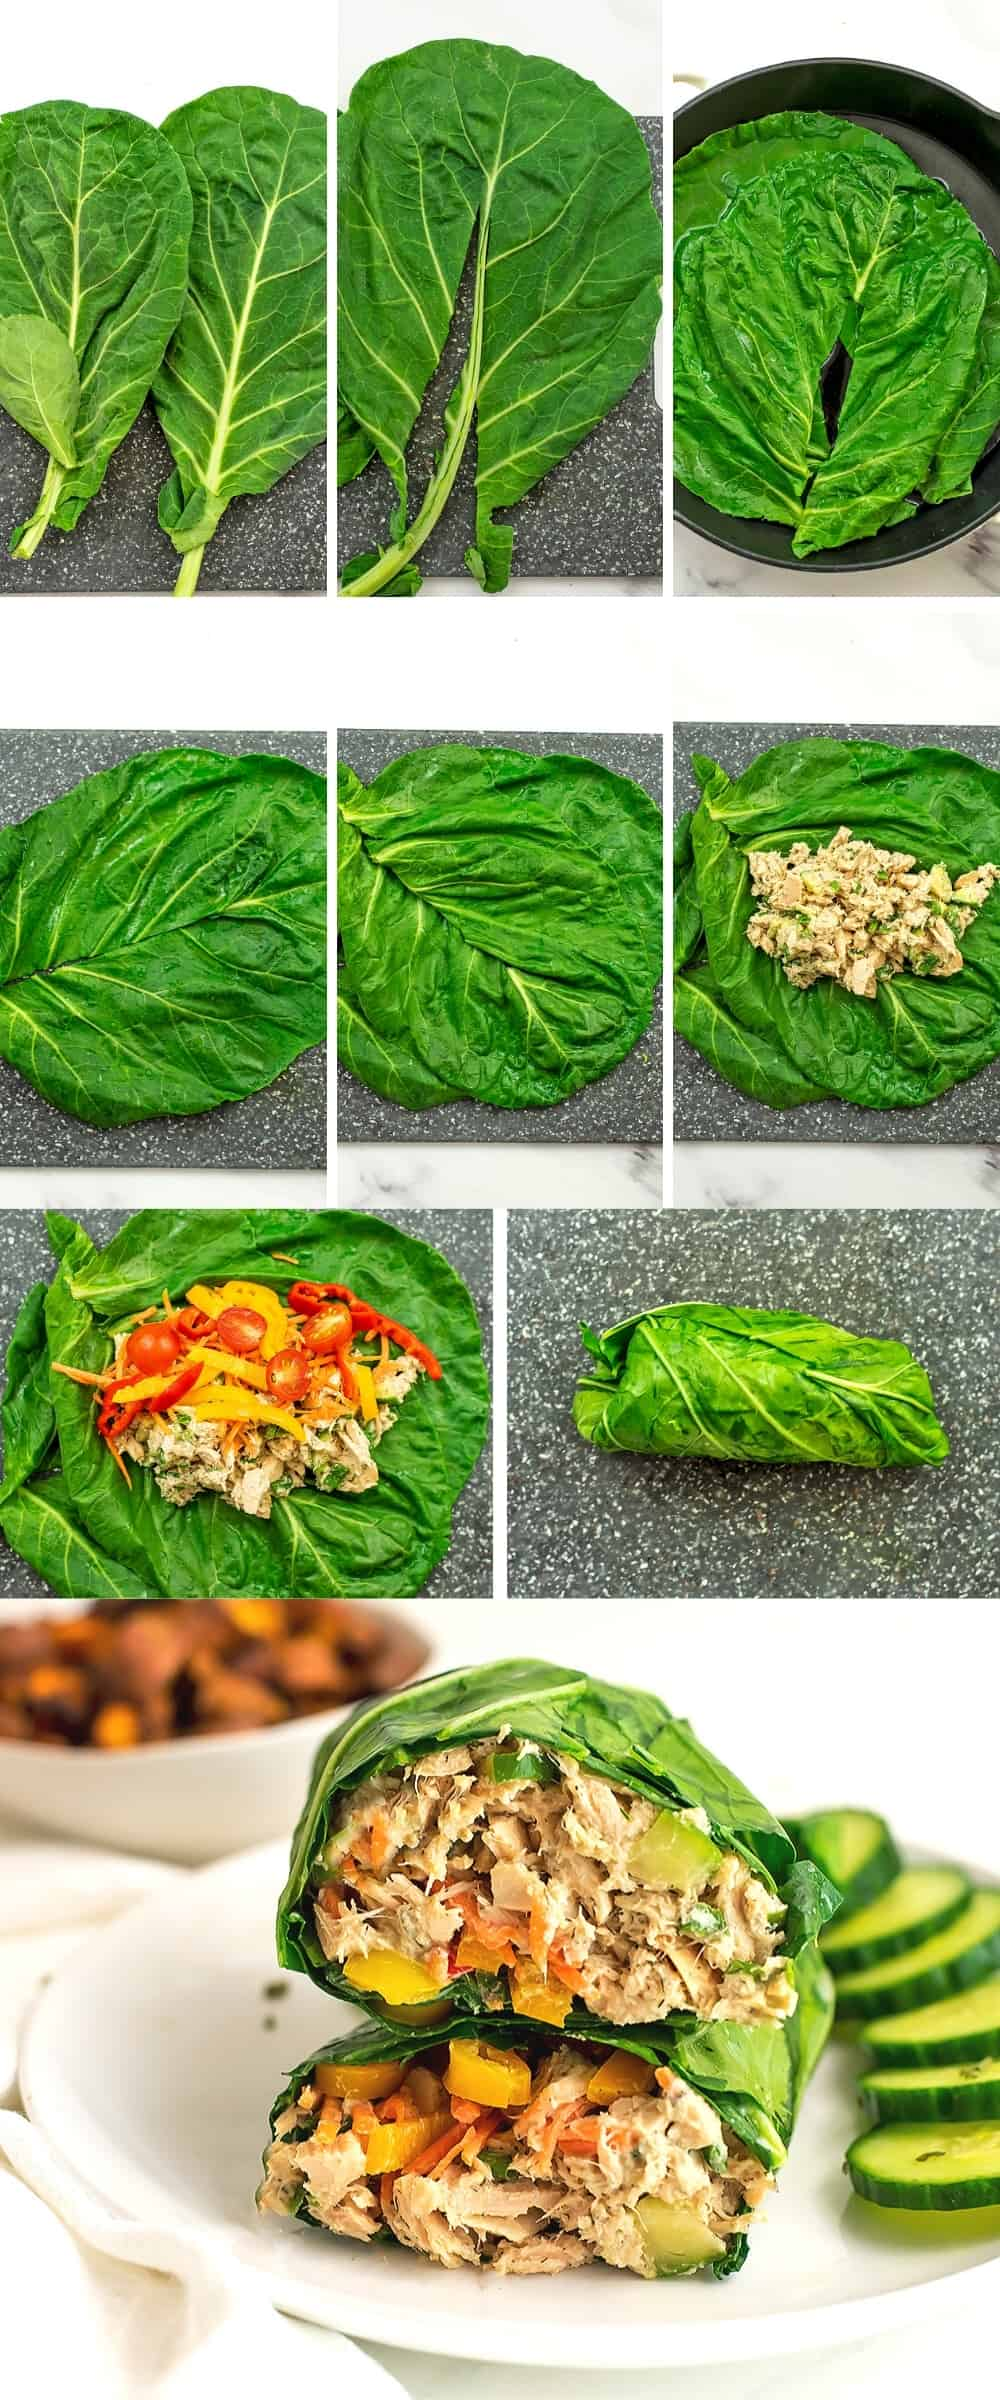 Instructions on how to make a collard green wrap.